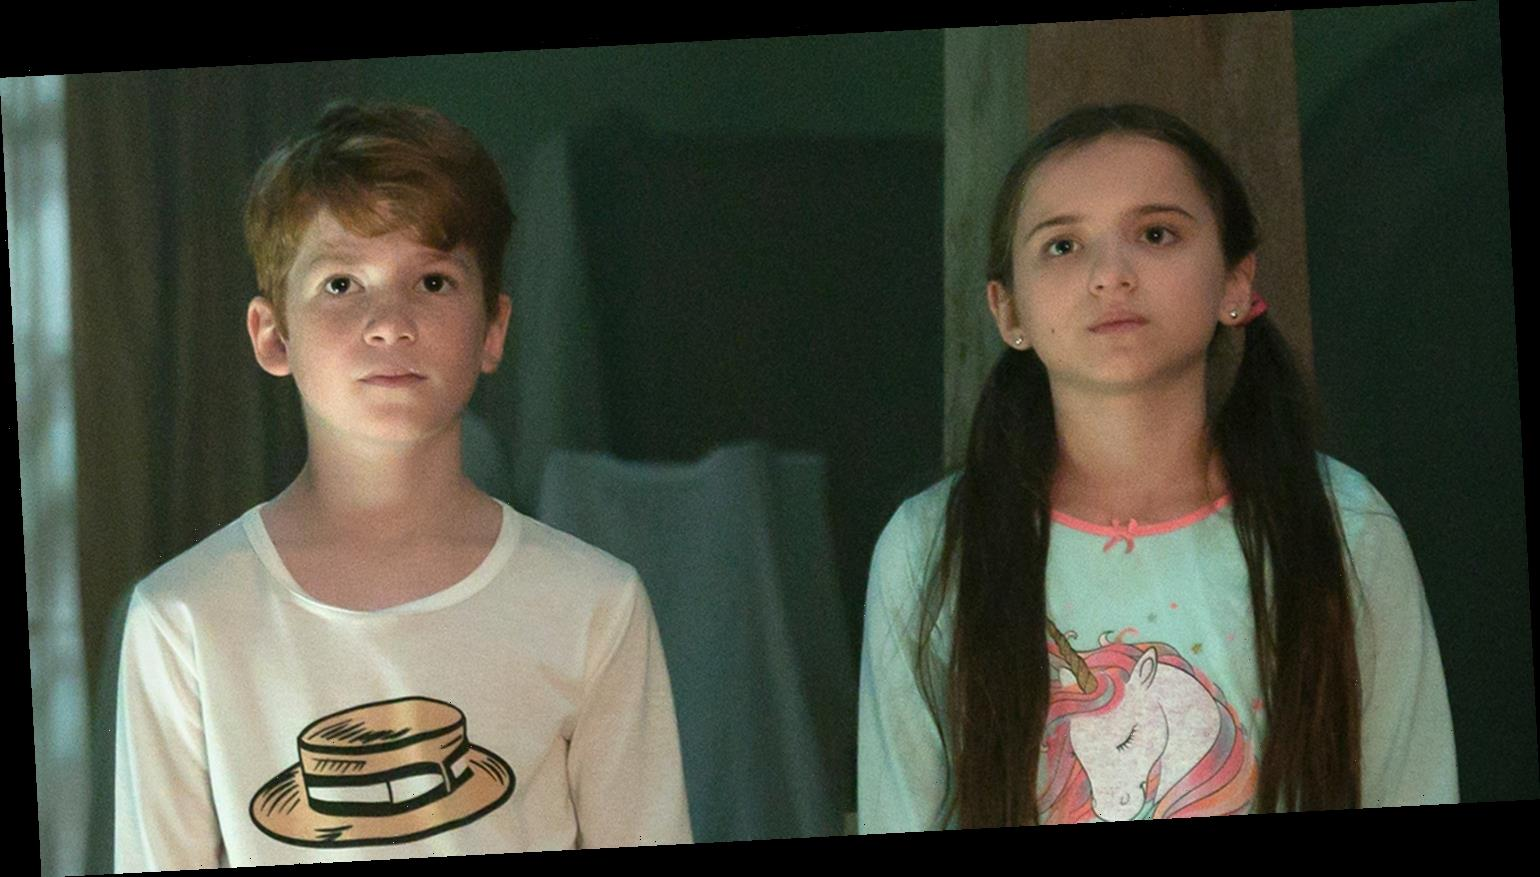 Learn More About the 'Secrets of Sulphur Springs' Twins With These Exclusive Videos